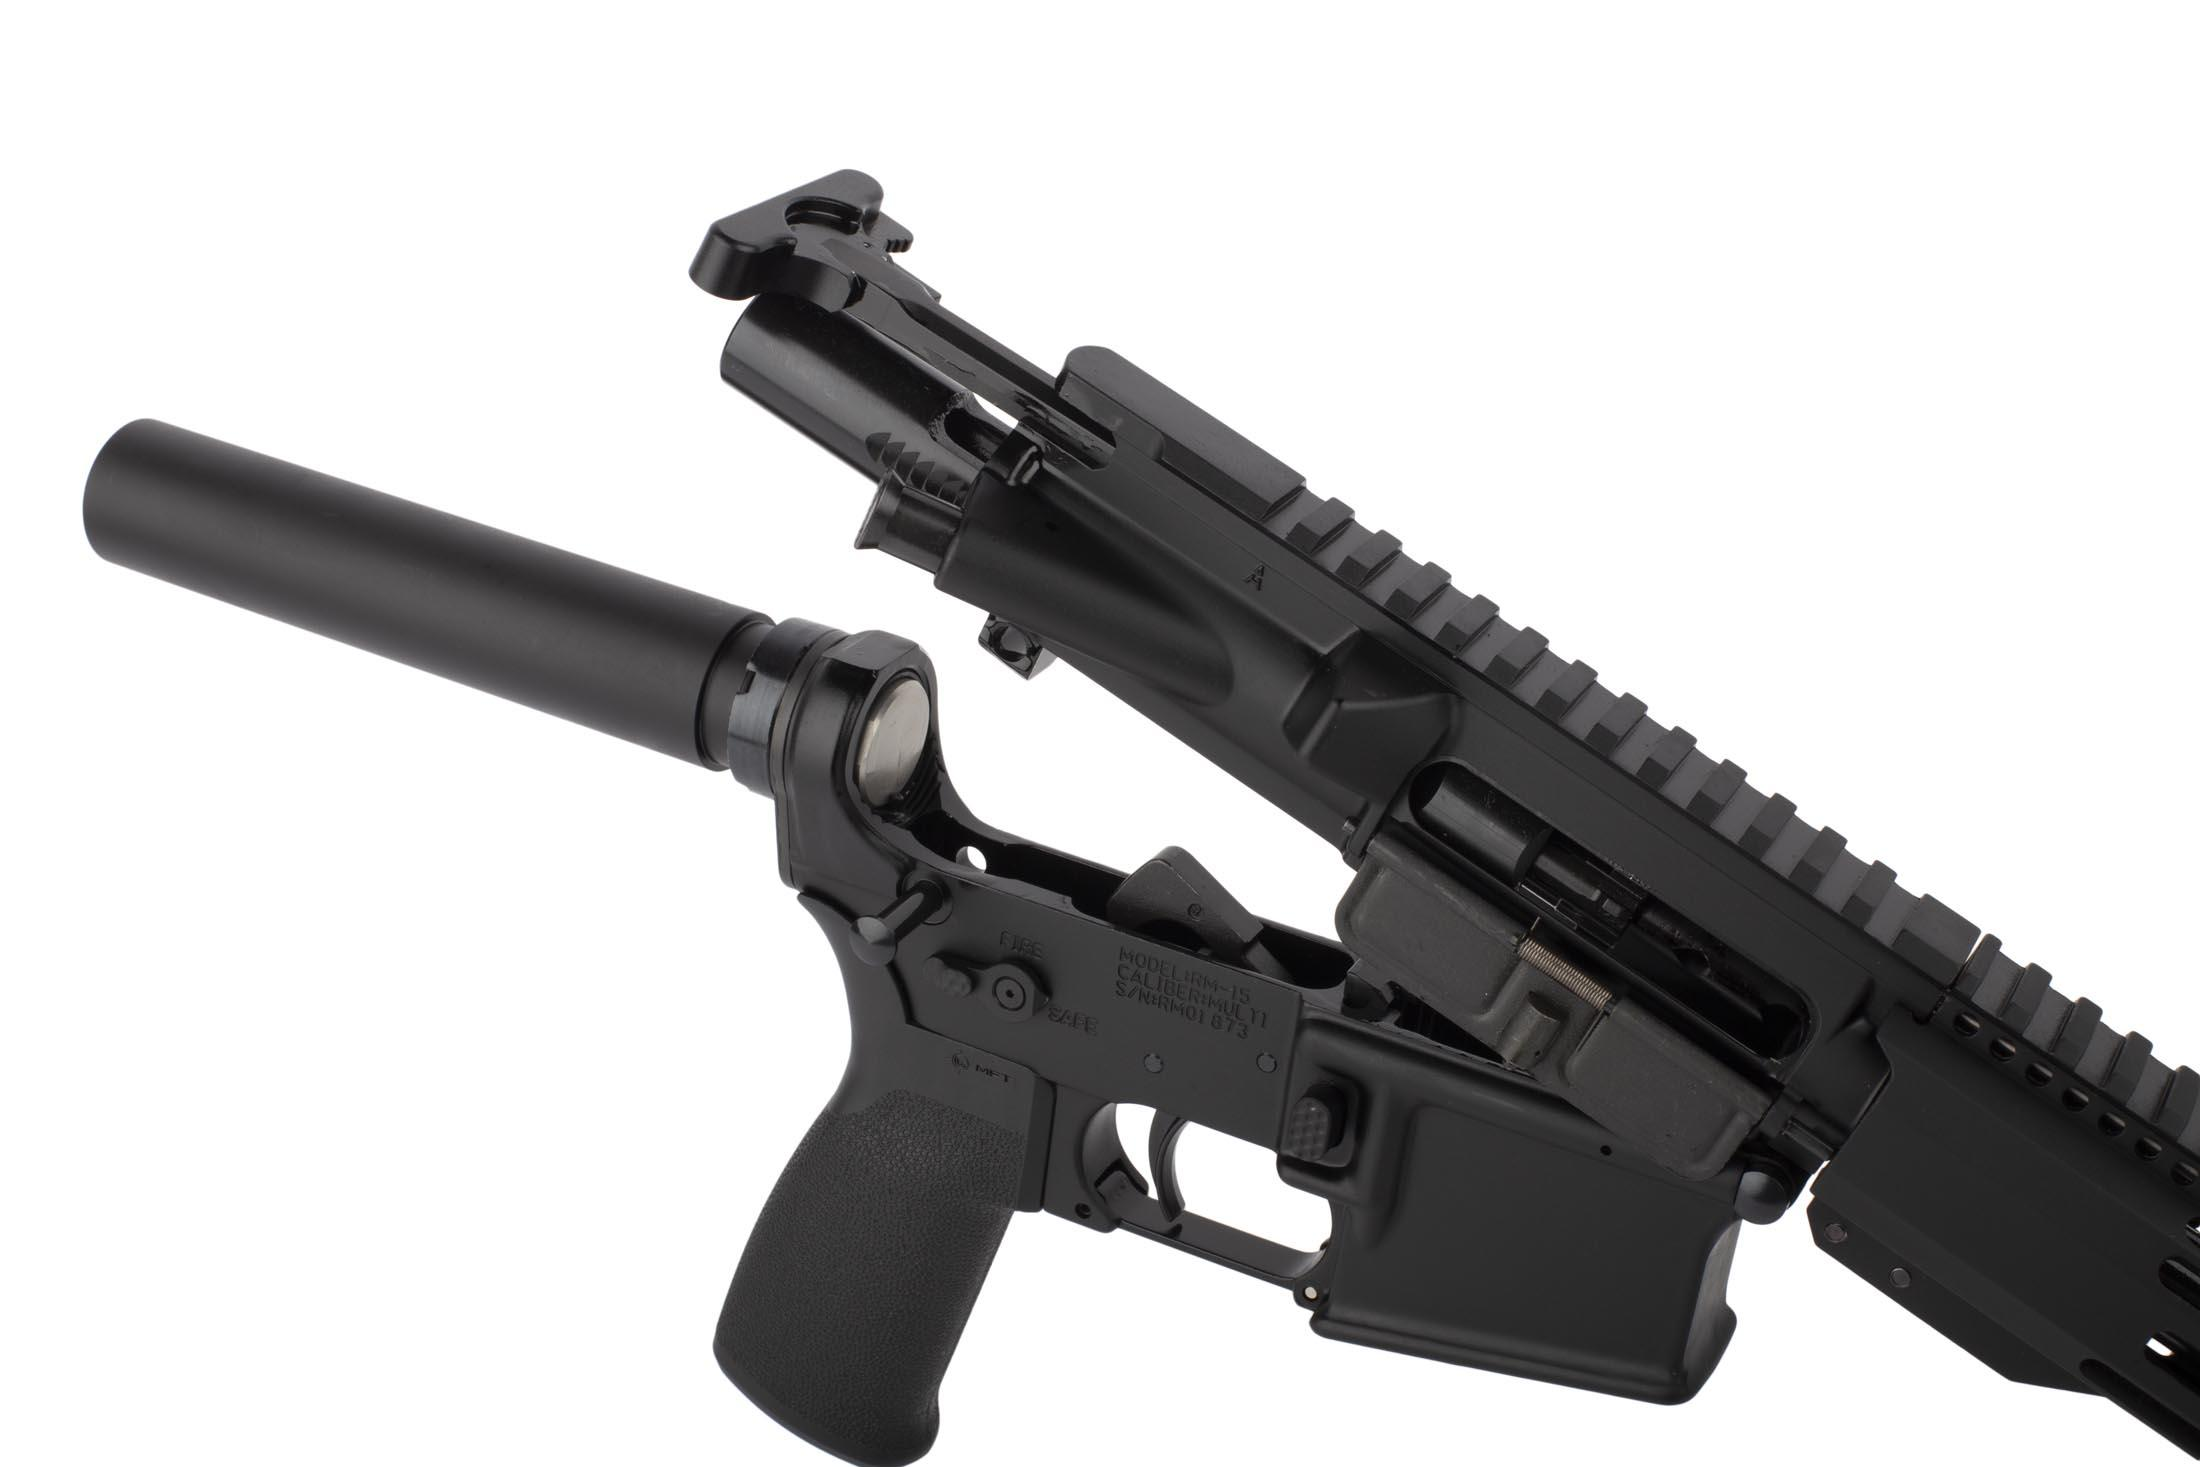 Radical 7.5in 5.56 NATO AR15 pistol featuers an M16 cut bolt carrier group and standard MIL-SPEC charging handle